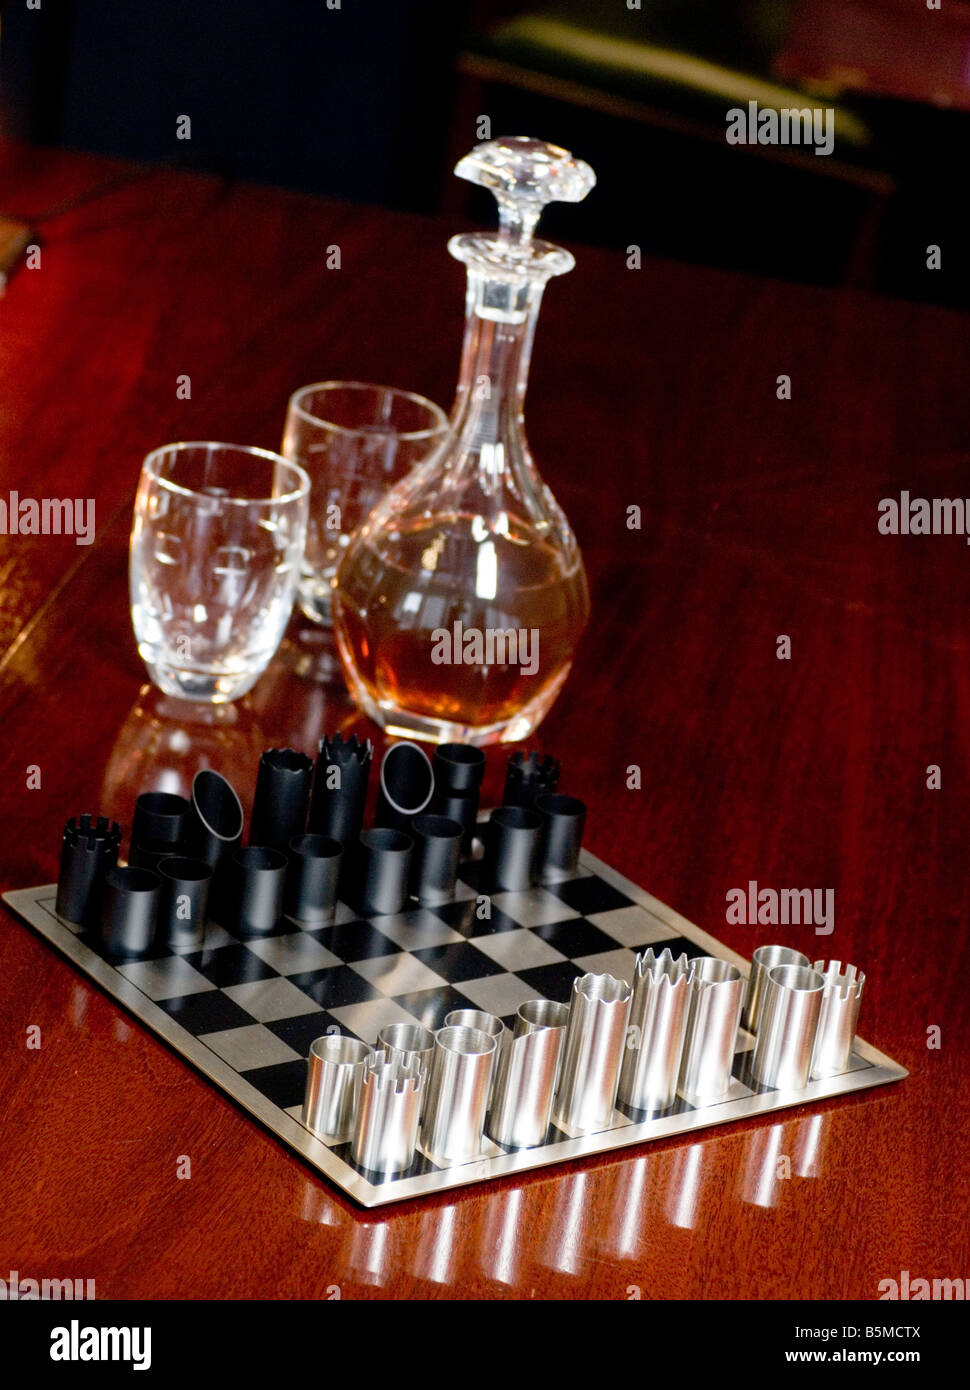 A decadent and modern style chess set with decanter and glasses - Stock Image